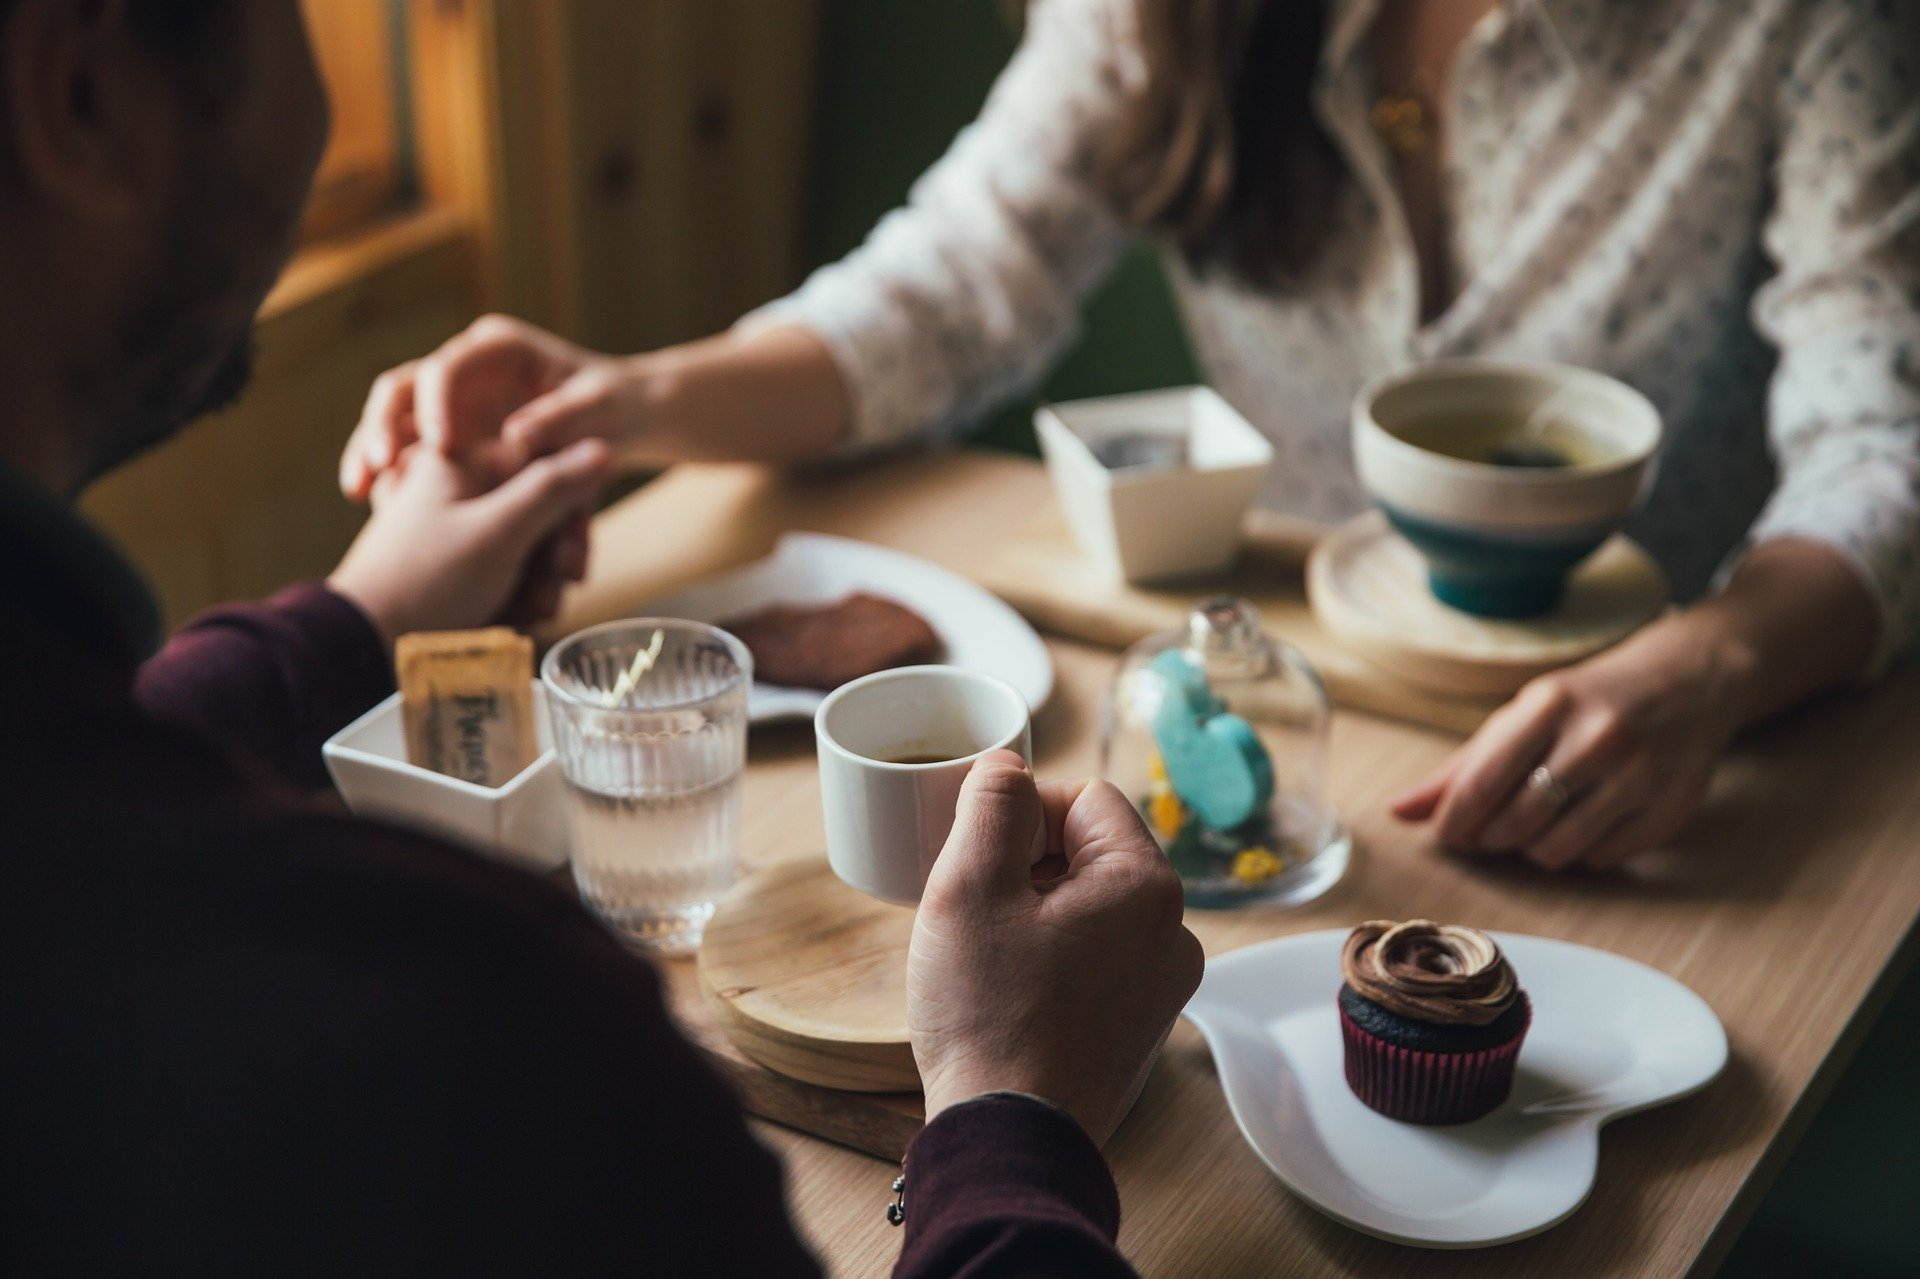 Spending time together will help you battle mental health issues together